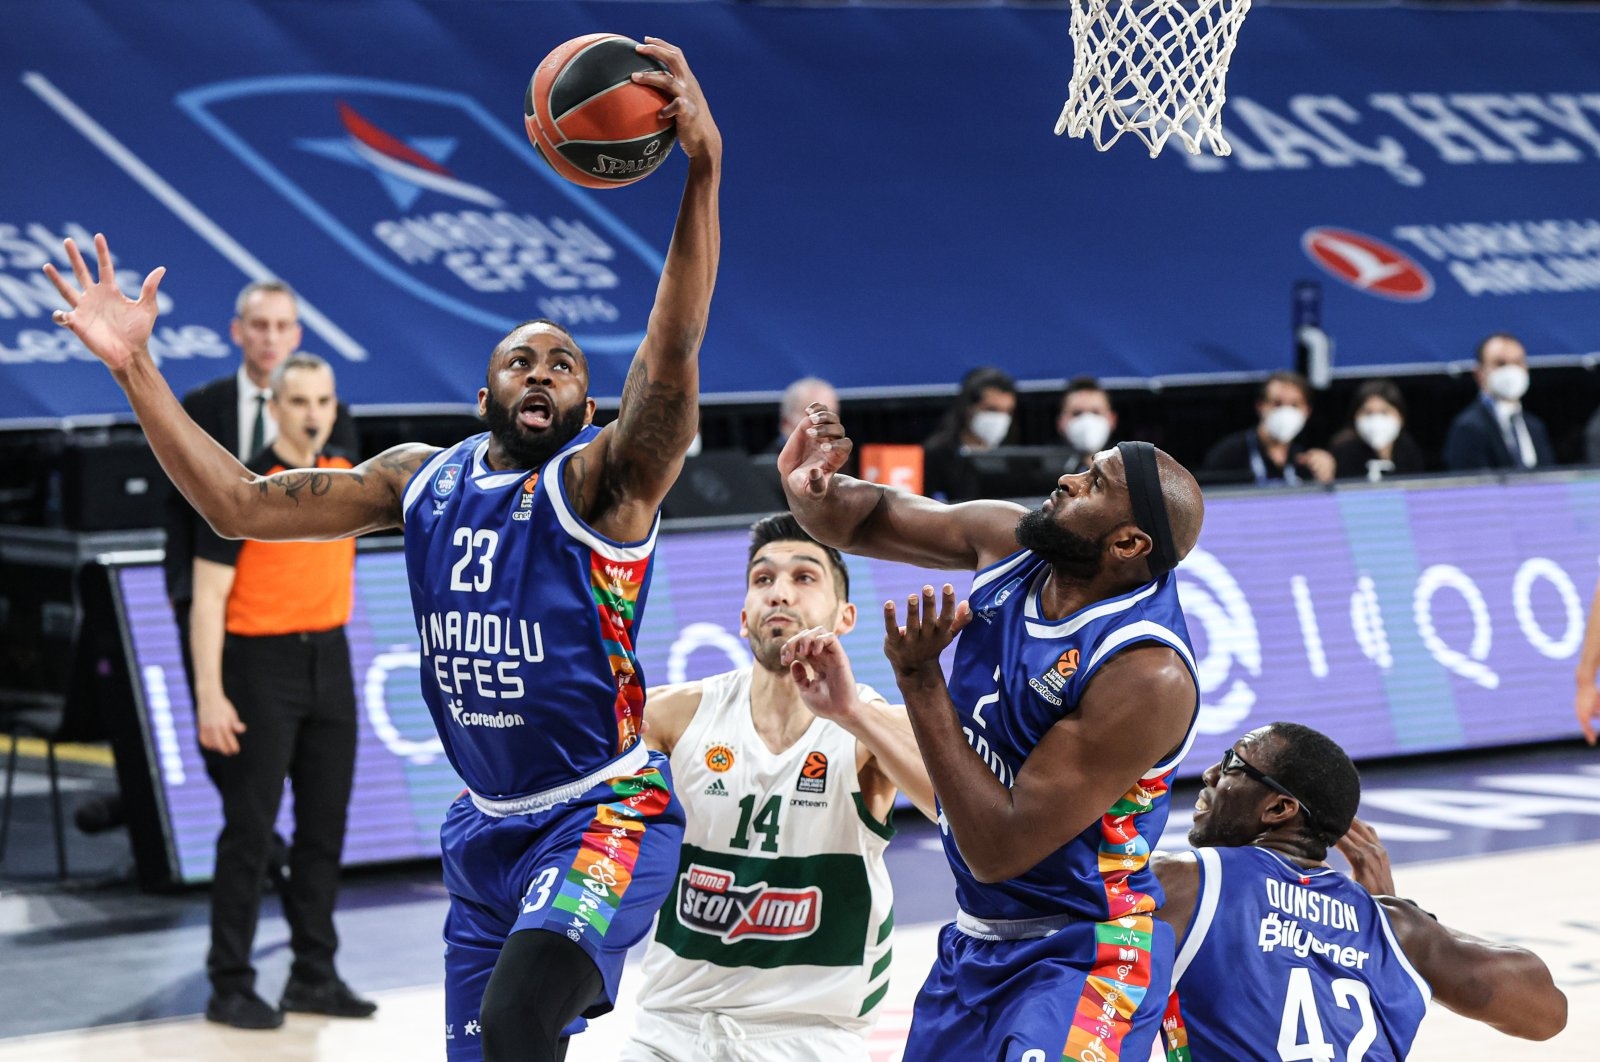 Anadolu Efes' James Anderson (23) in action with Panathinaikos' Leonidas Kaselakis (14) during the Euroleague clash at Istanbul's Sinan Erdem Sports Complex, Mar. 25, 2021 (AA Photo)